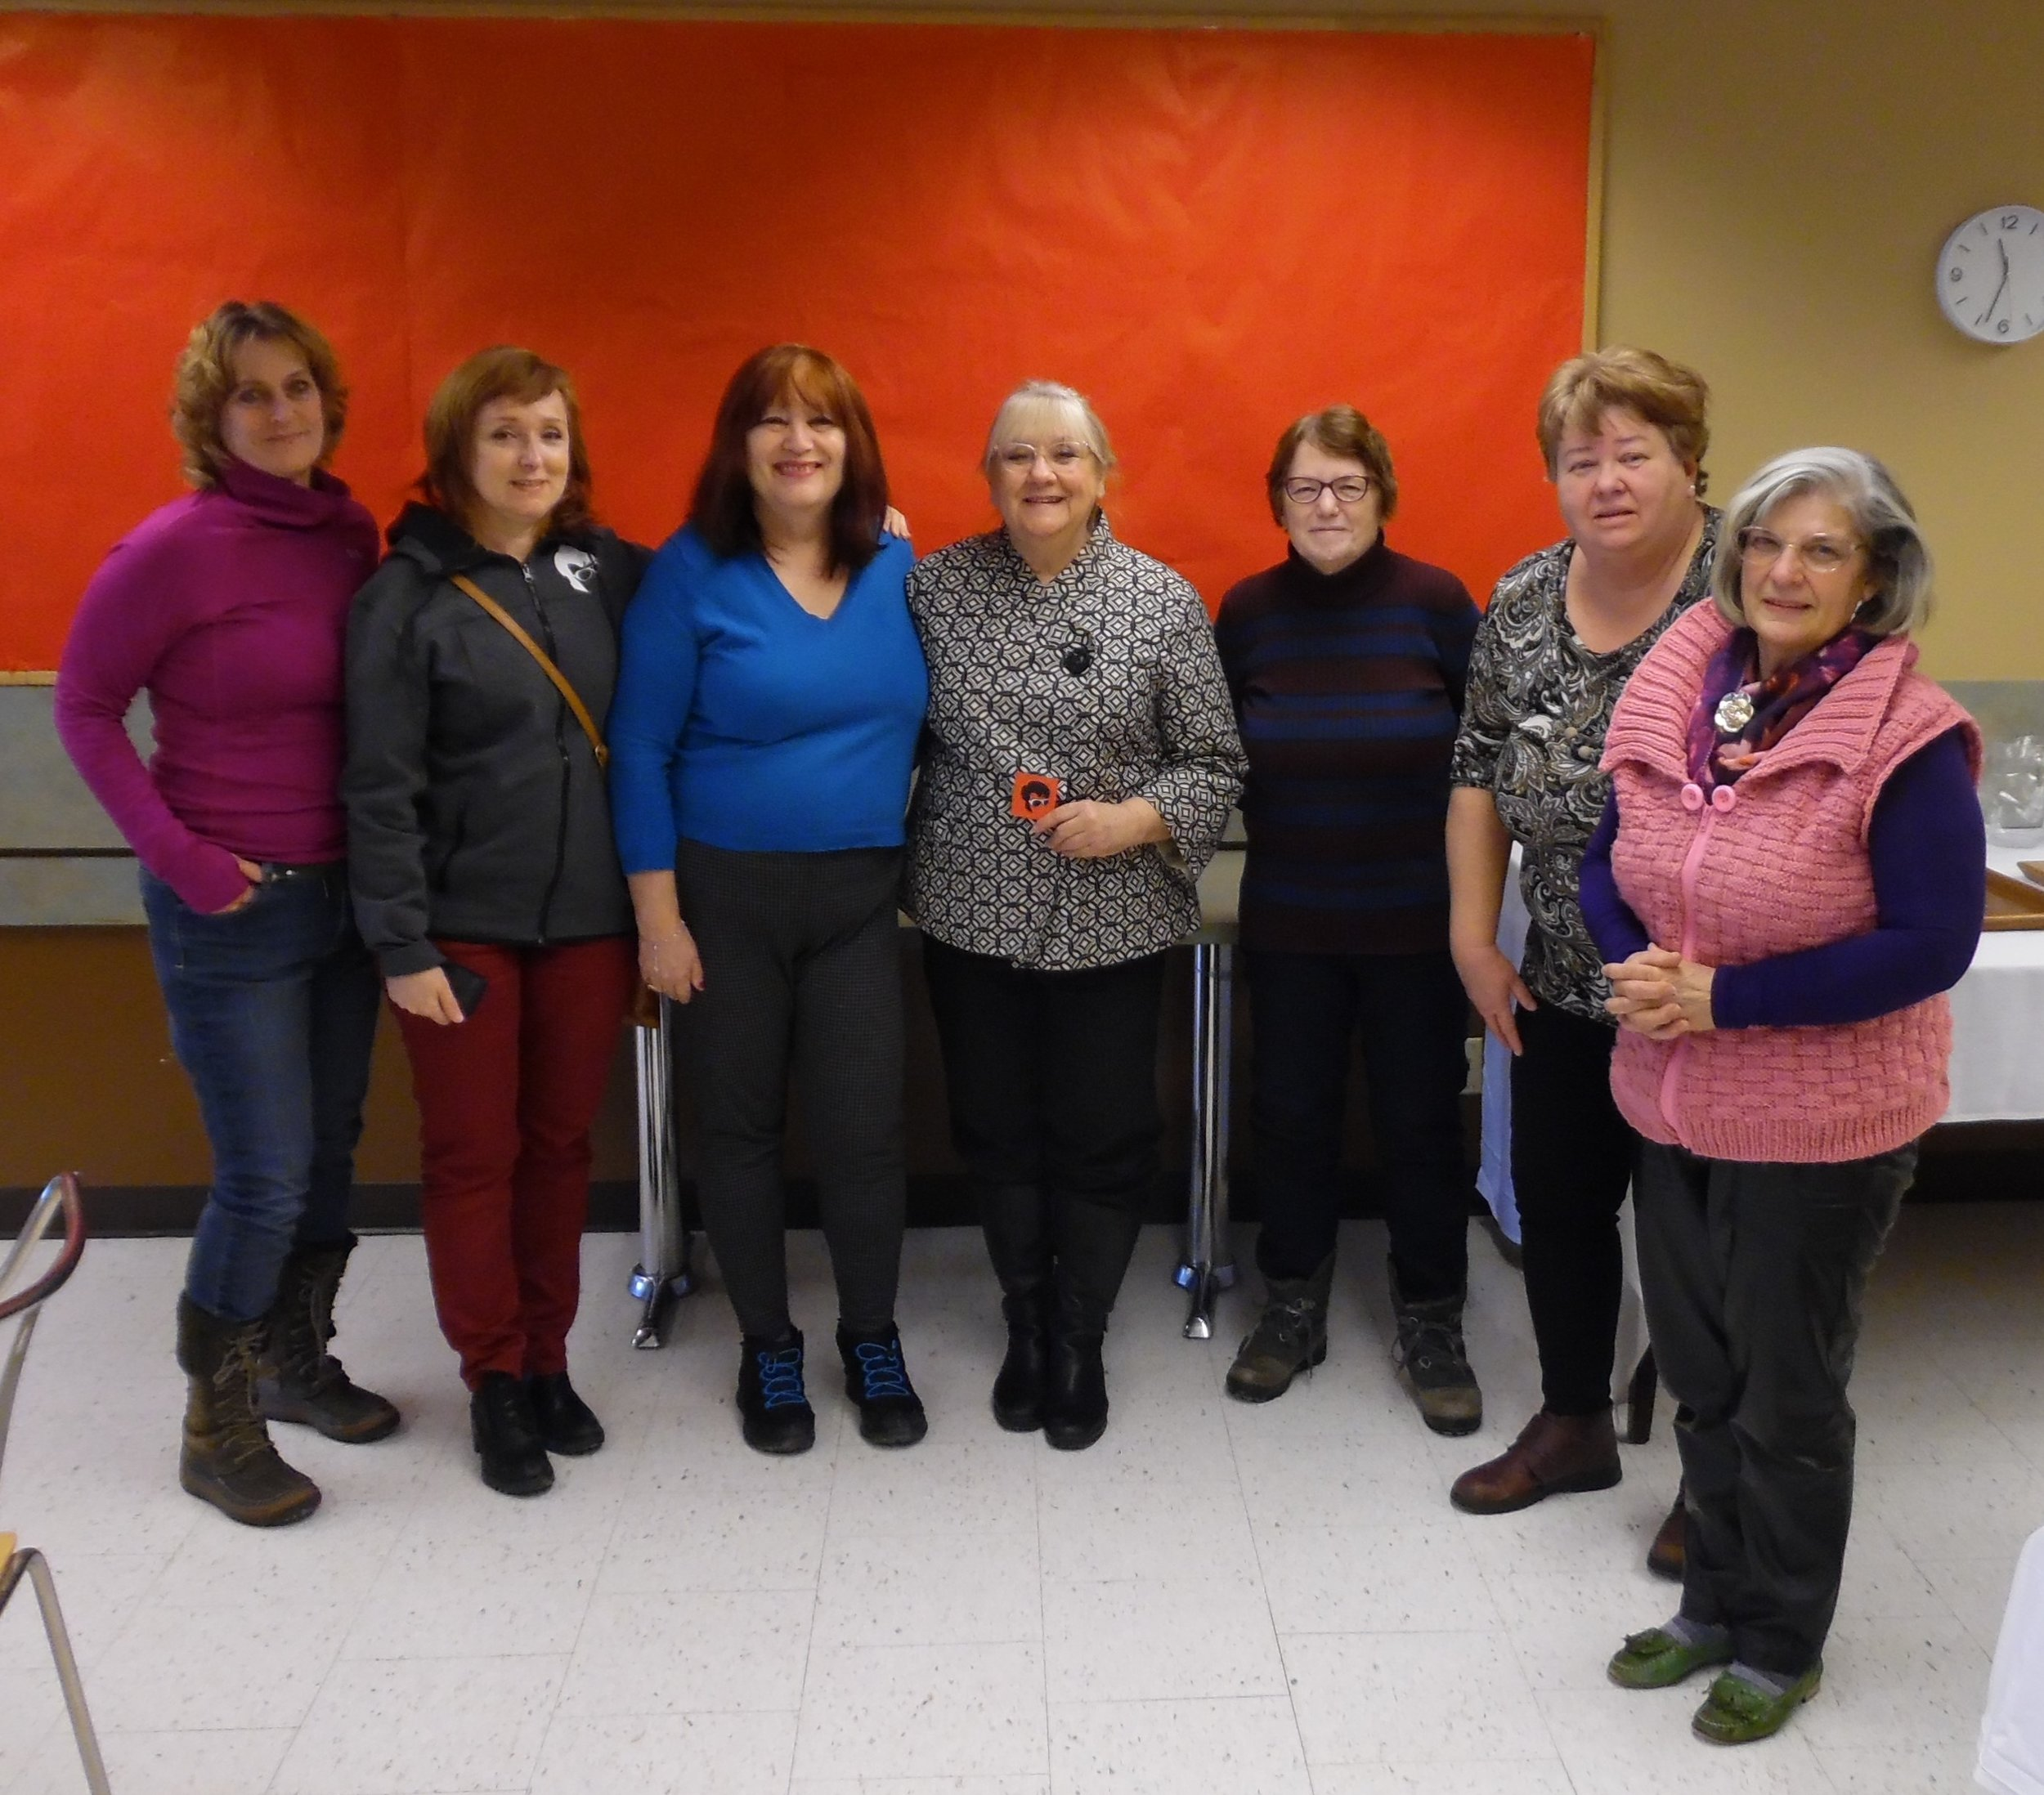 SIDEBURNS Magazine Editor, Carolyn MacArthur, gave a talk on operating an online magazine and blogging to the RWTO/Hamilton-Wentworth writing group, Friday, January 19th, 2018.